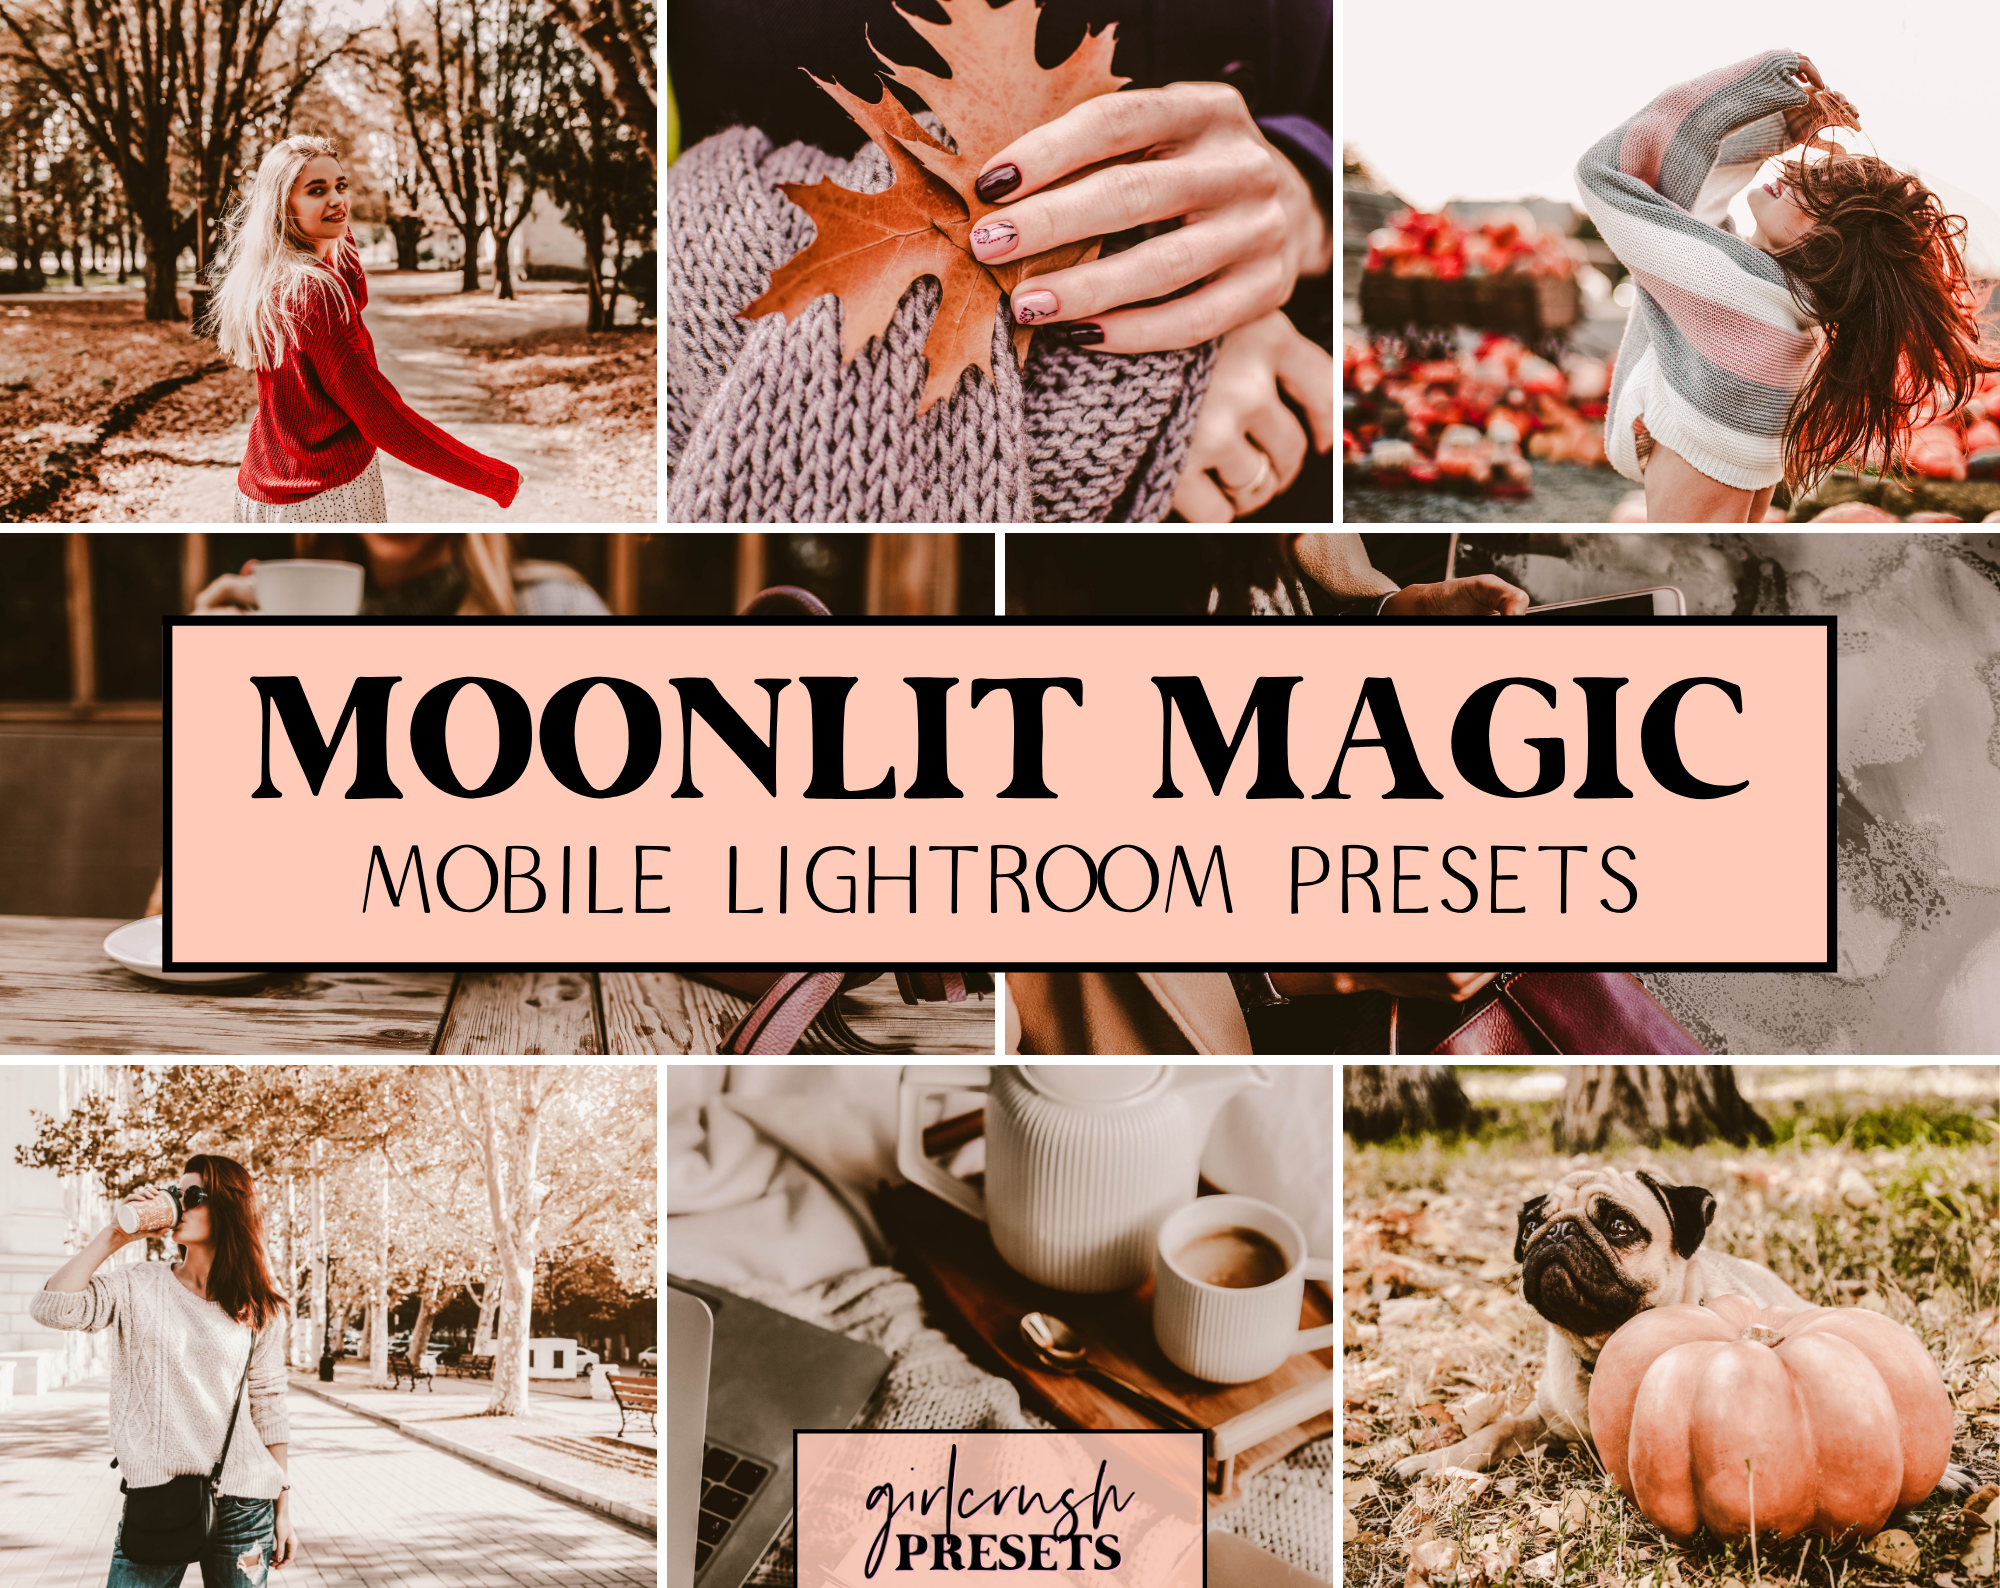 Moonlit Magic Lightroom Presets